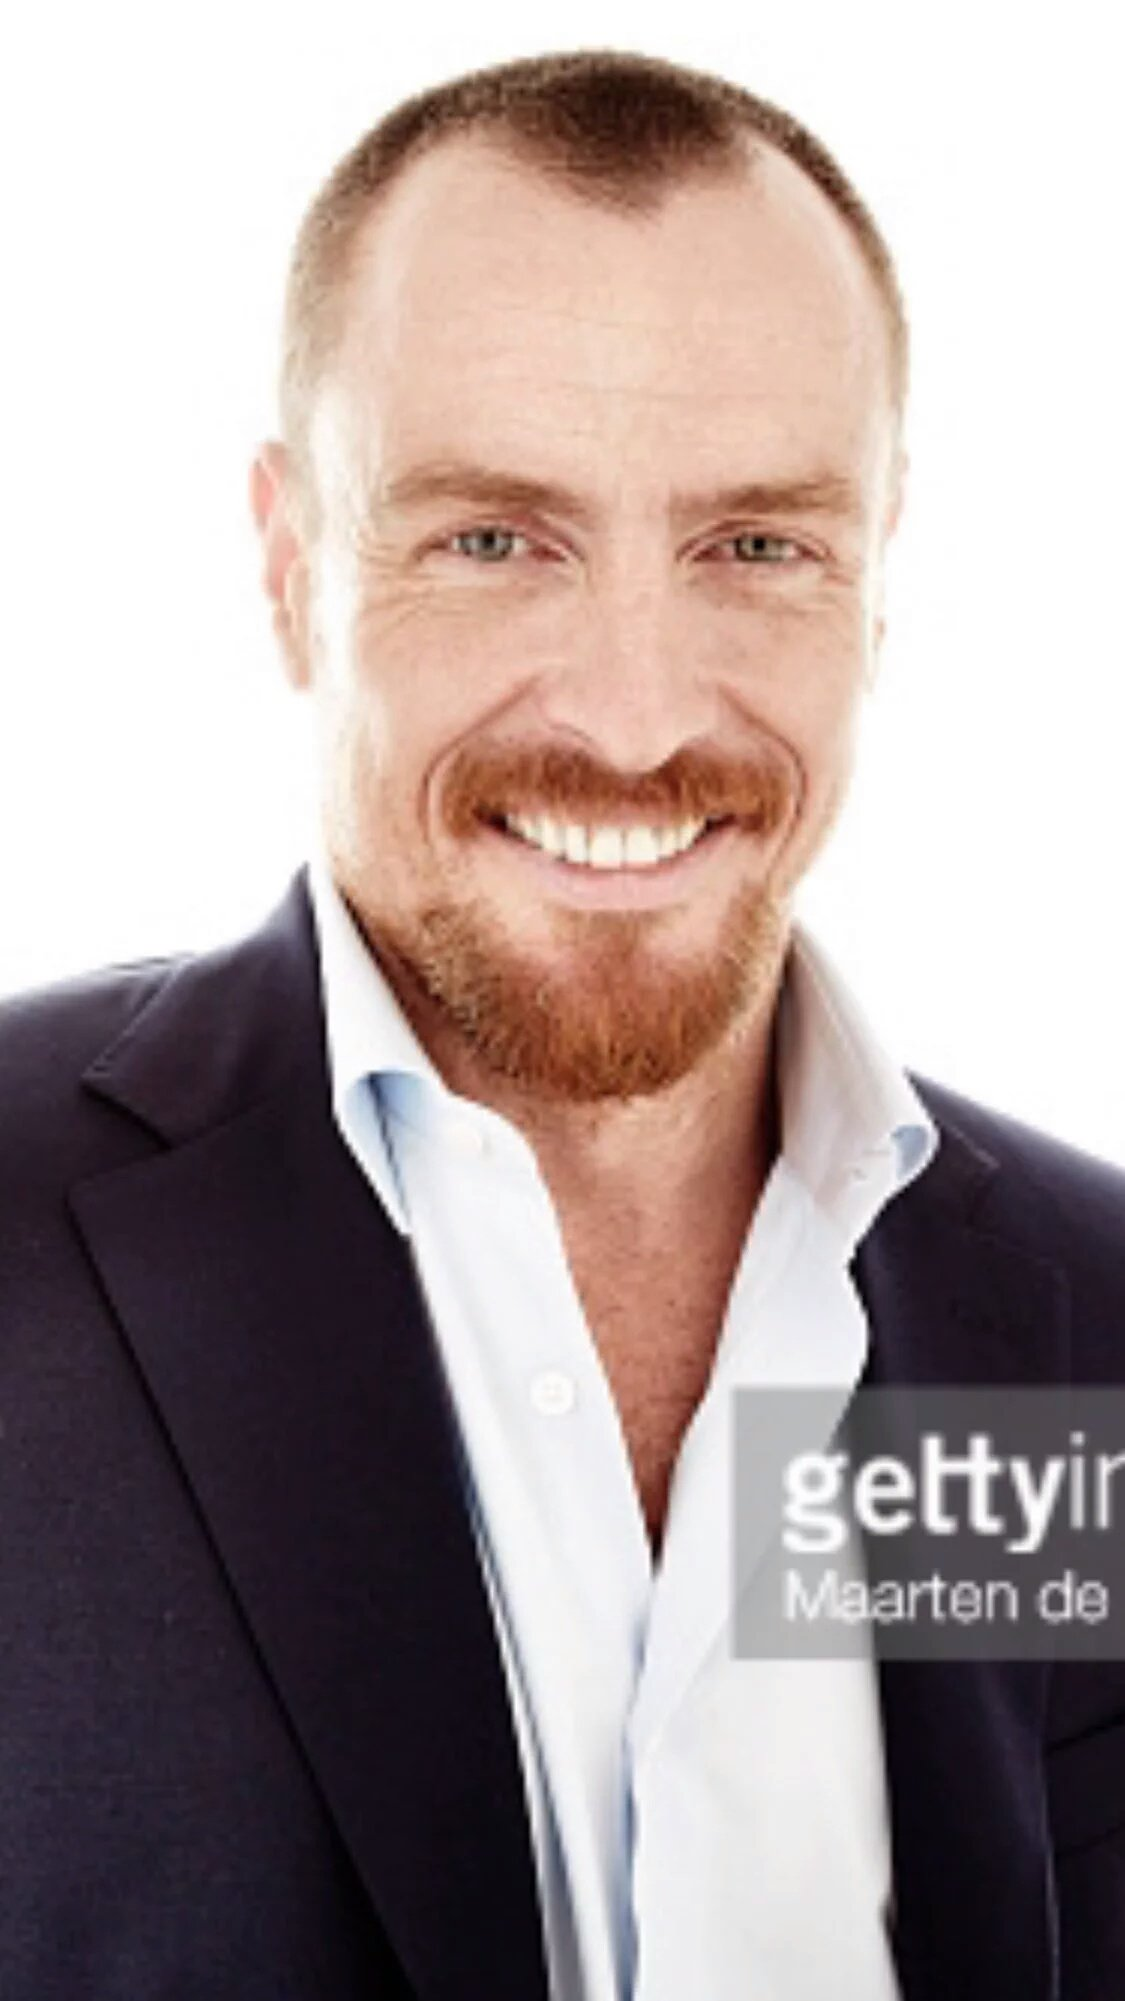 Toby Stephens was Born on this day 21 April 1969, happy birthday Toby have a fabulous day! Xx